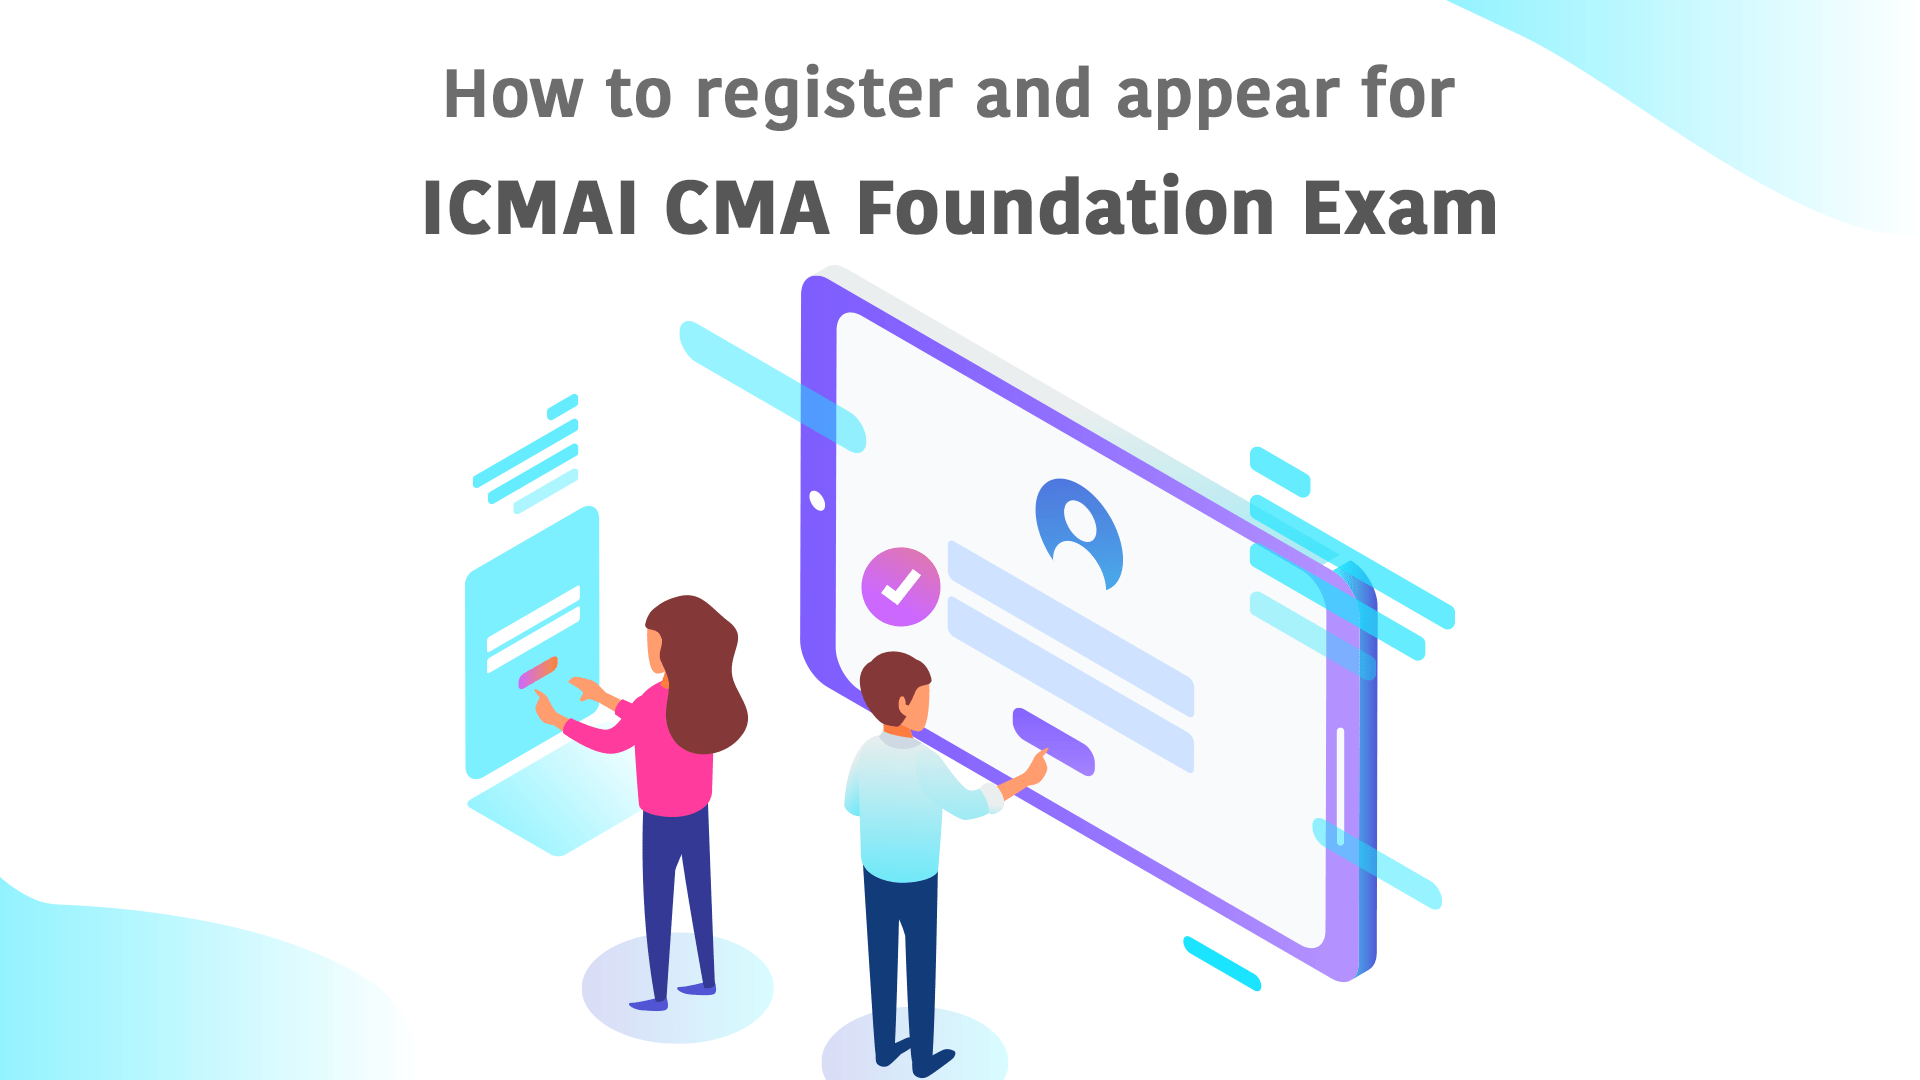 How to Register and Appear for ICMAI CMA Foundation Exam